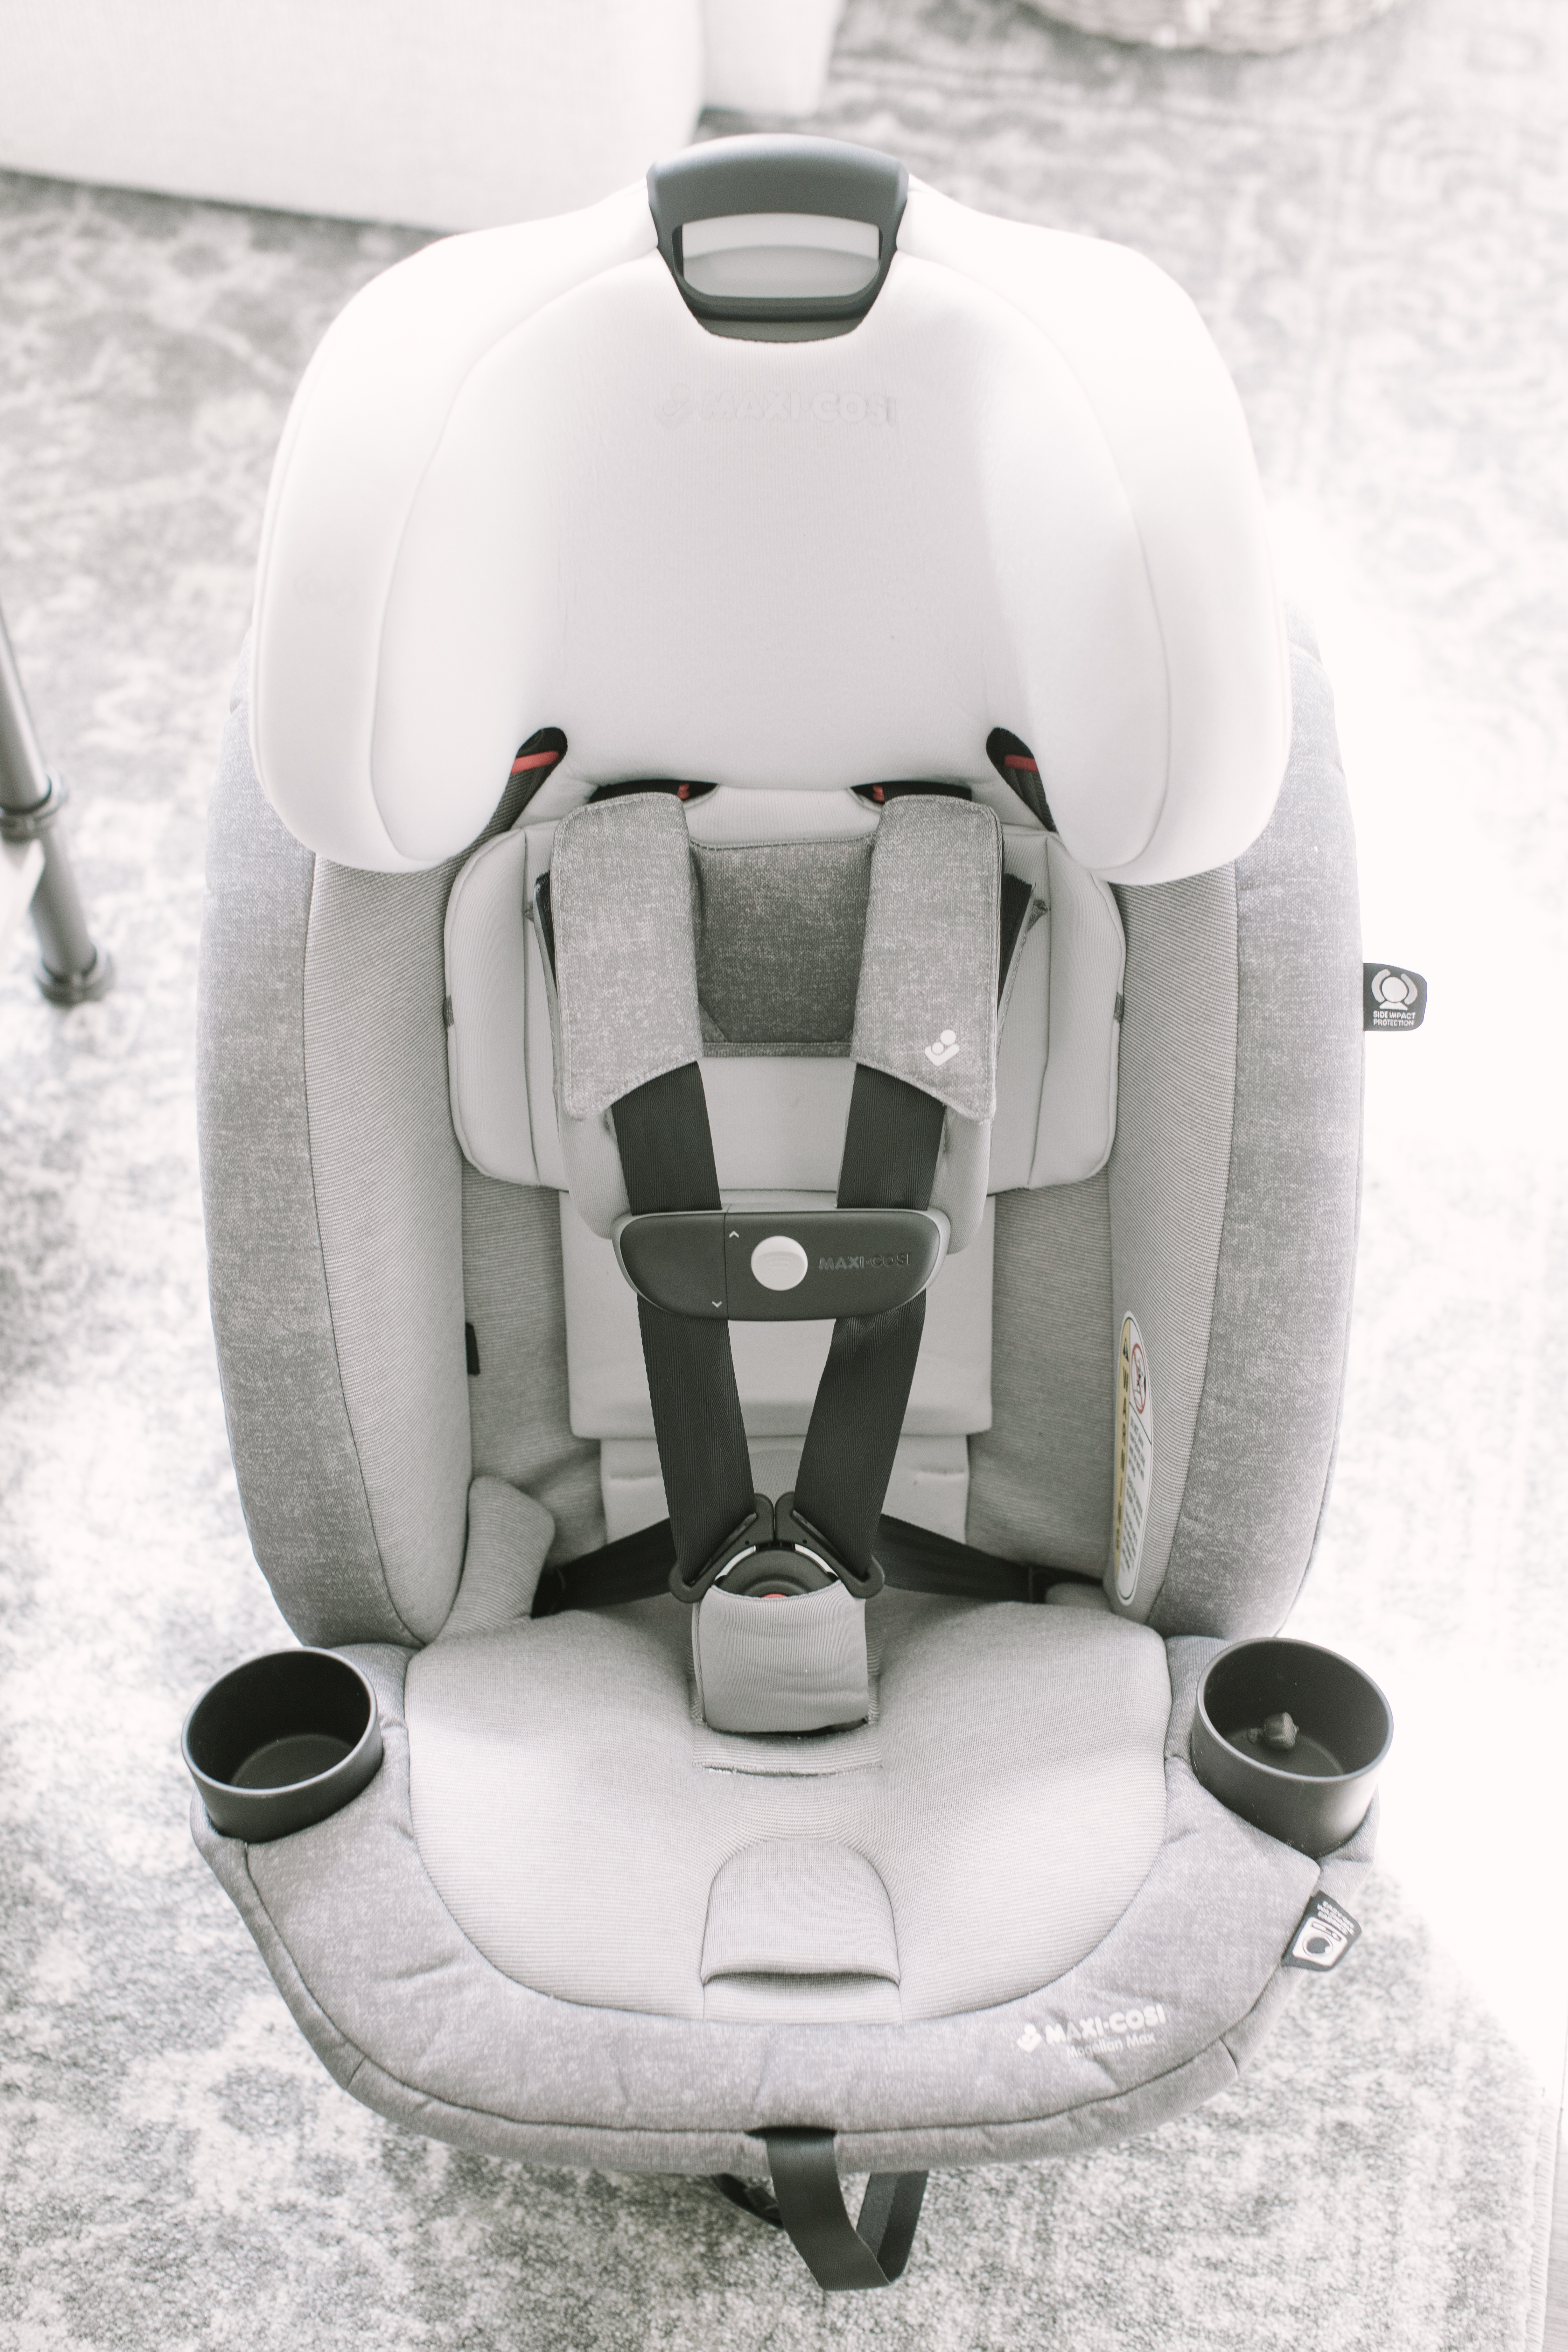 You Can Learn More About The Maxi Cosi MagellanTM Max 5 In 1 Convertible Car Seat ARV 39999ea At Their Website HERE And Purchase Your Own Albee Baby